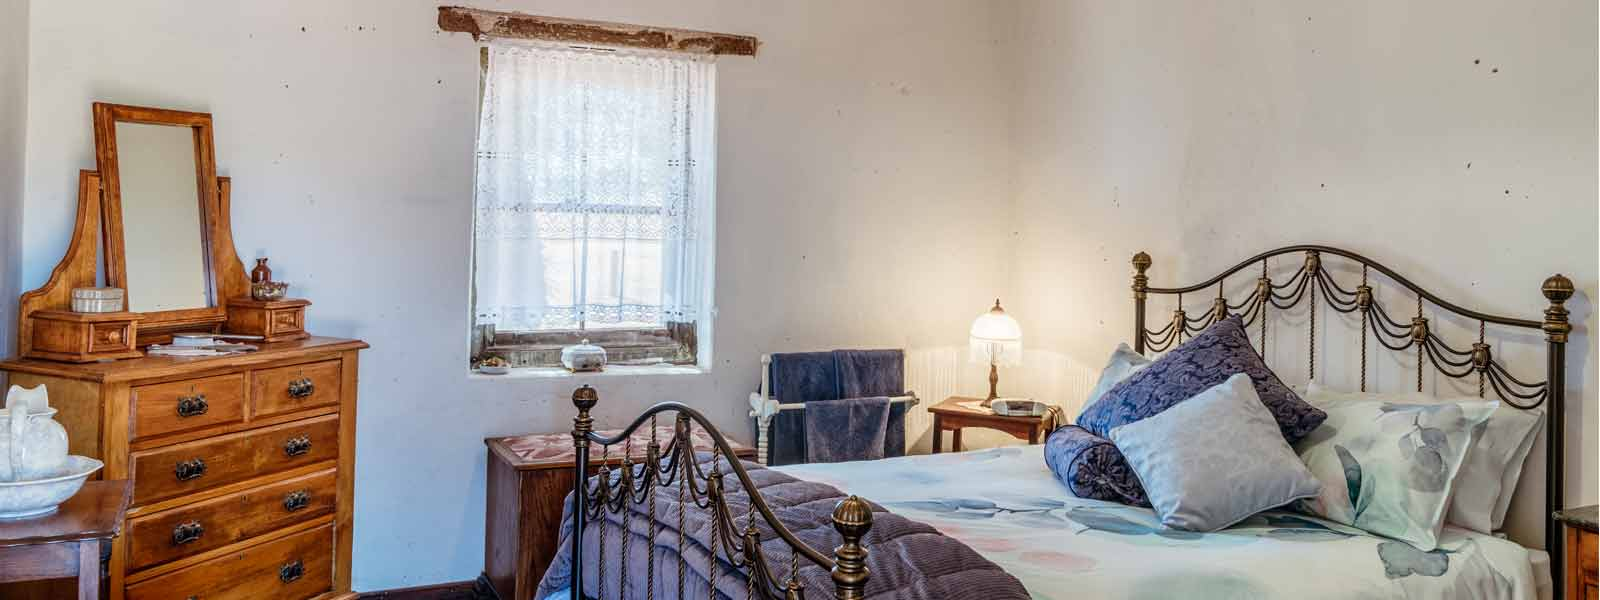 country-B&B, bed-and-breakfast-accommodation